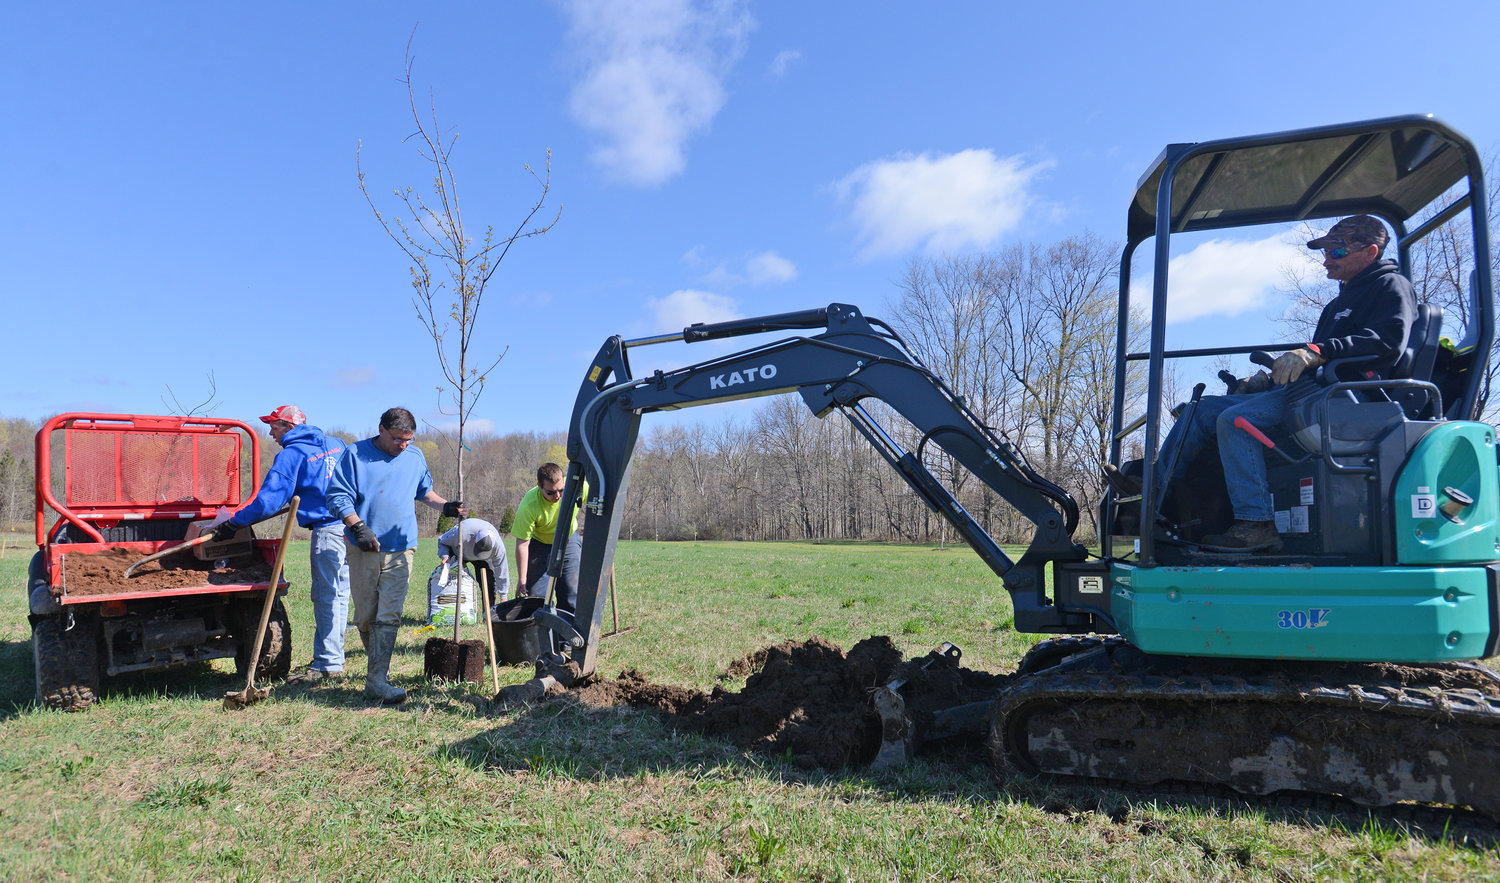 PLANTING SEASON — Backhoe operator Ken Yager digs a hole for a tree to be planted while town workers  Chris Taylor, Larry Gruby, Gabe Streiff (in the background) and Jordan Dygert prepare the red maple for planting.